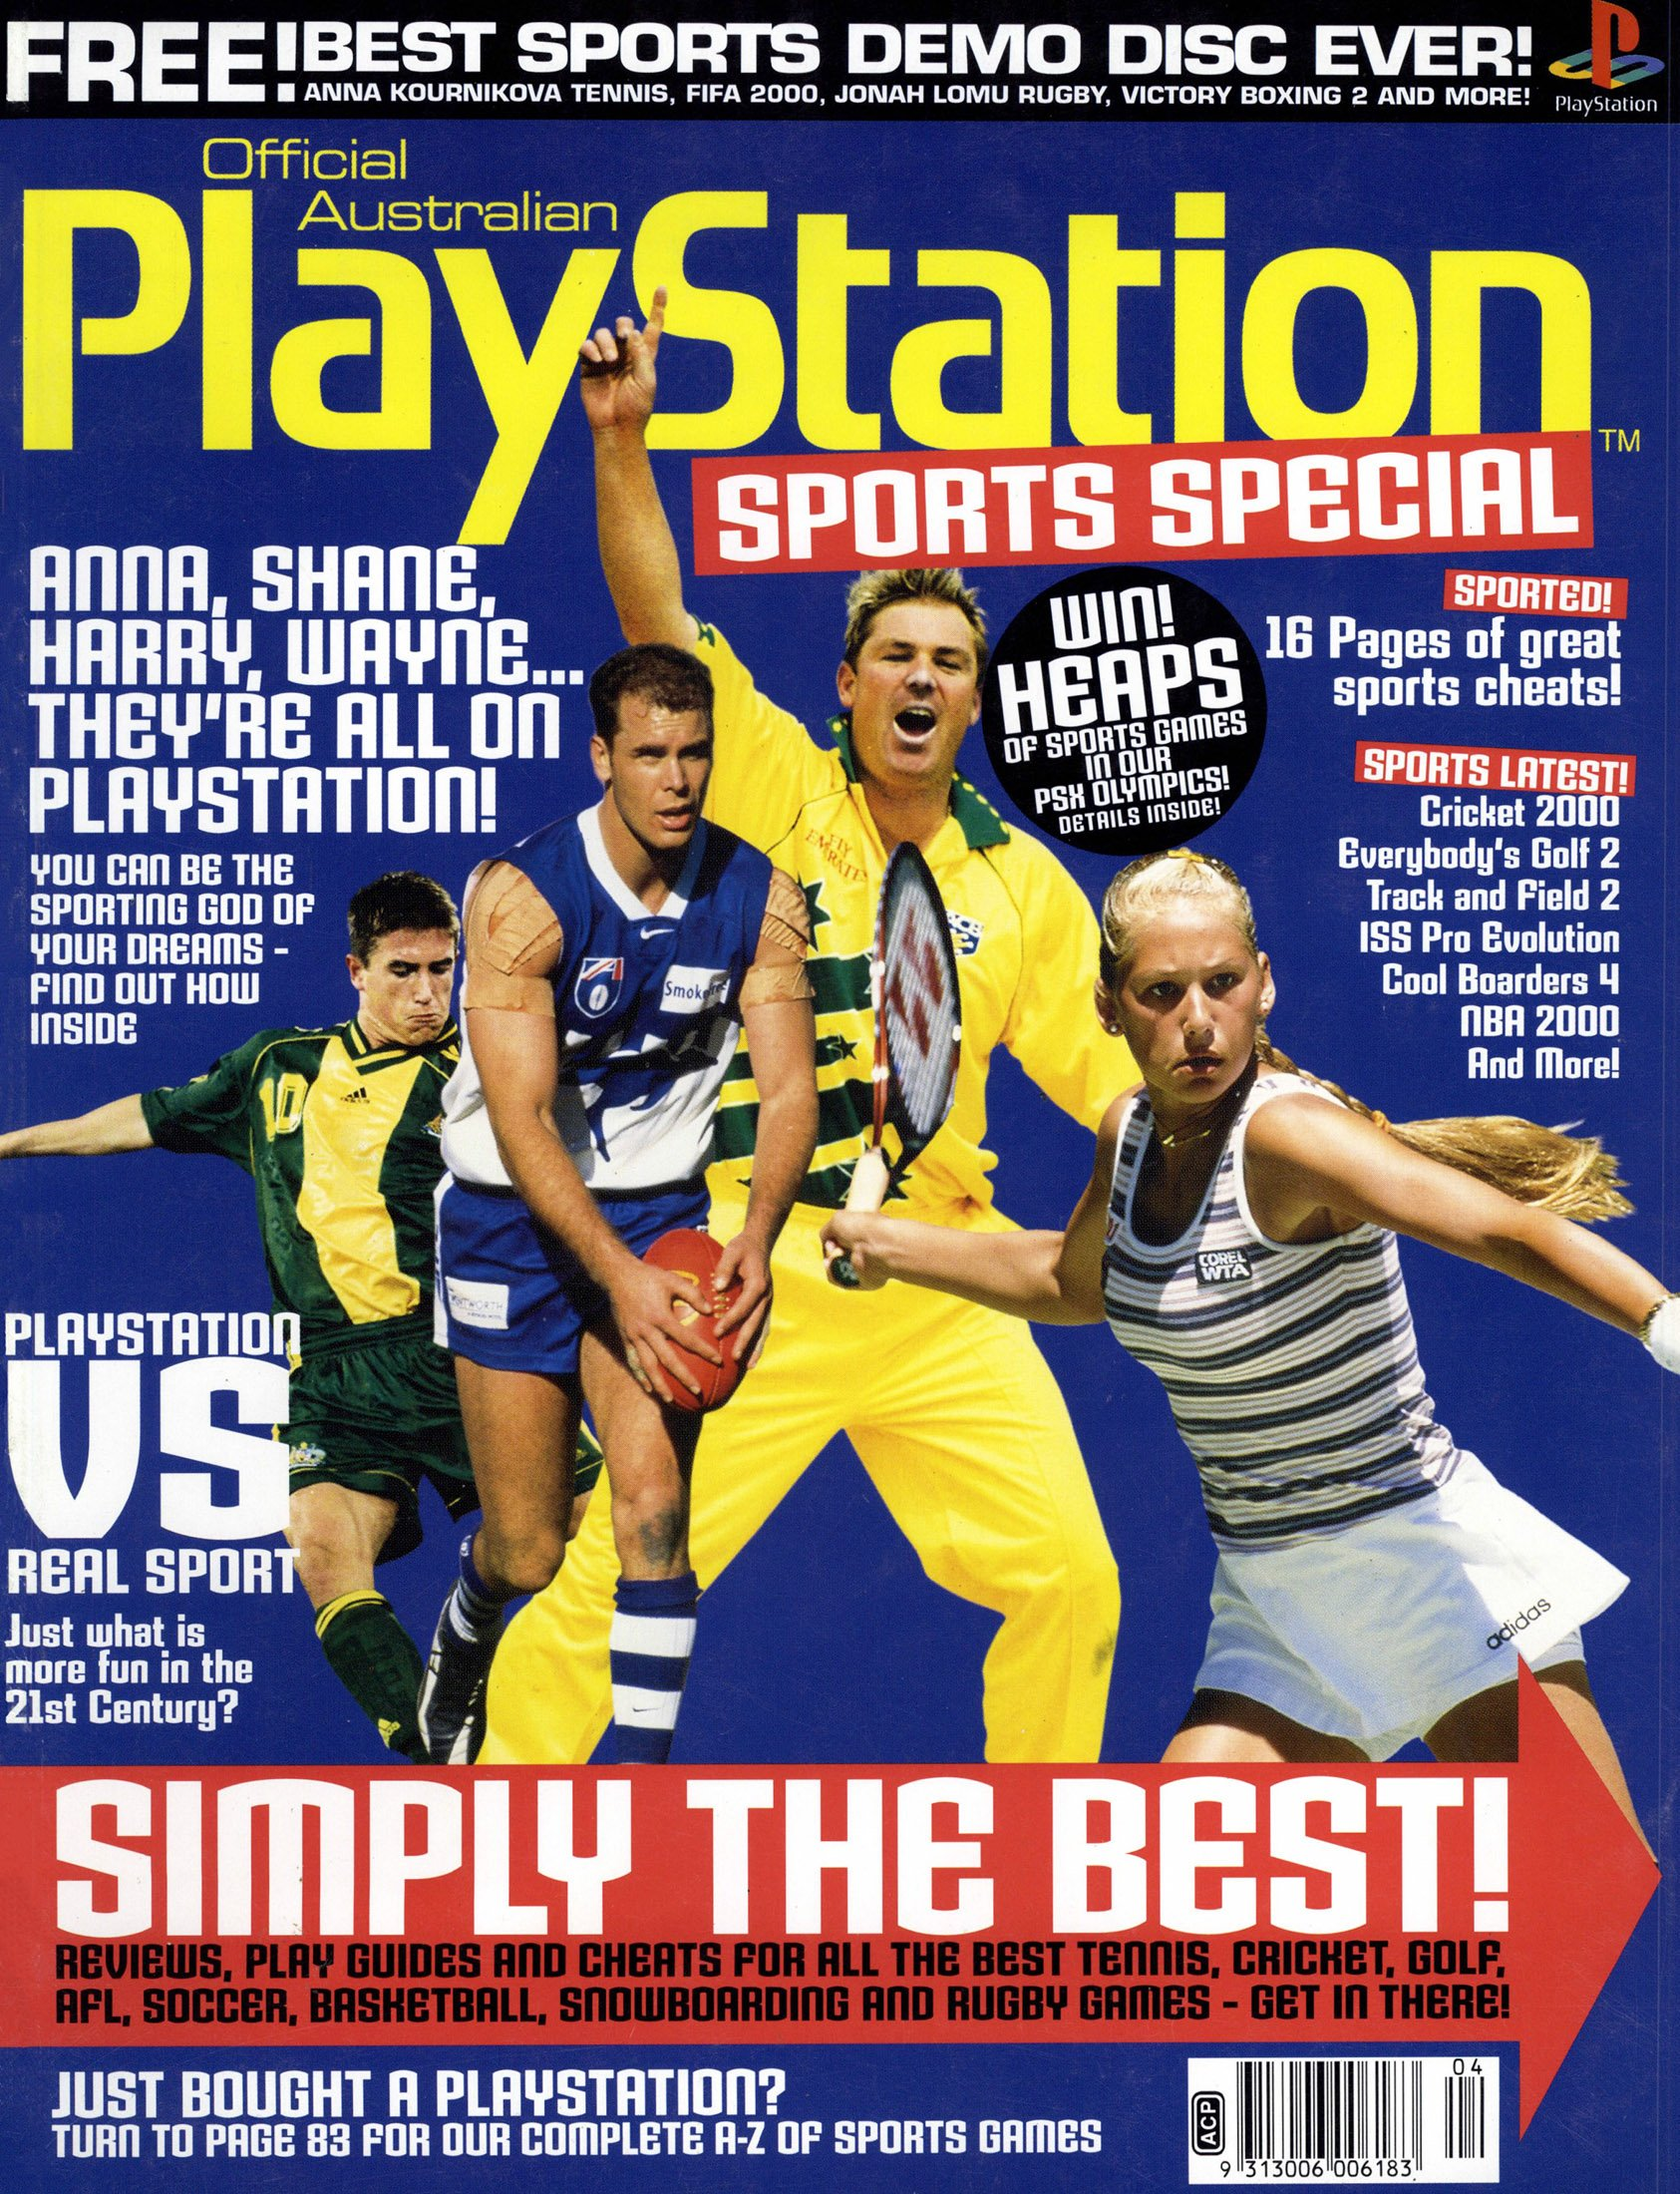 Official Australian PlayStation Magazine Sports Special (March 2000)